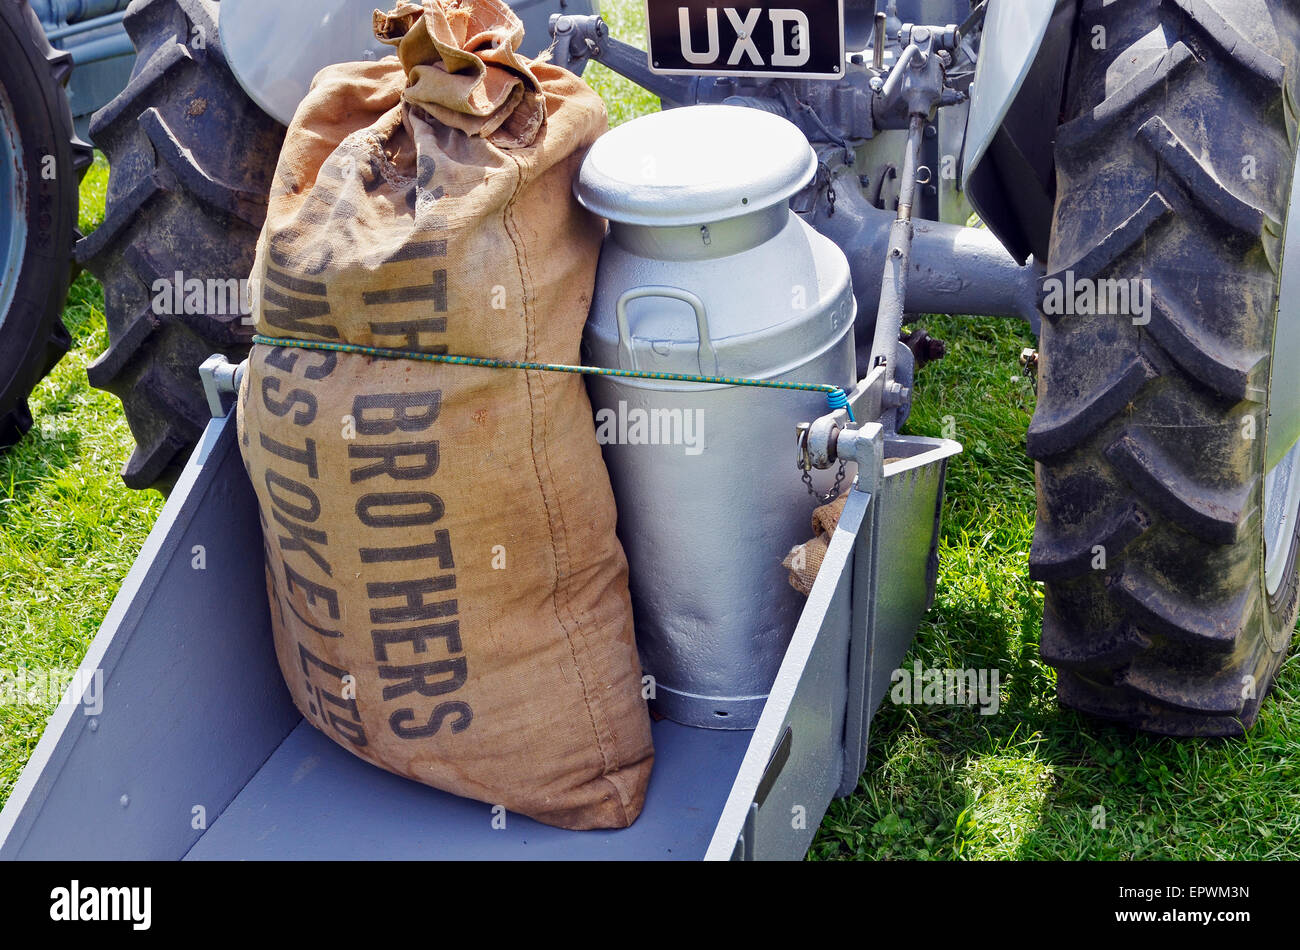 The versatility of the Ferguson tractor system -  sack and churn on a rear bucket platform. - Stock Image